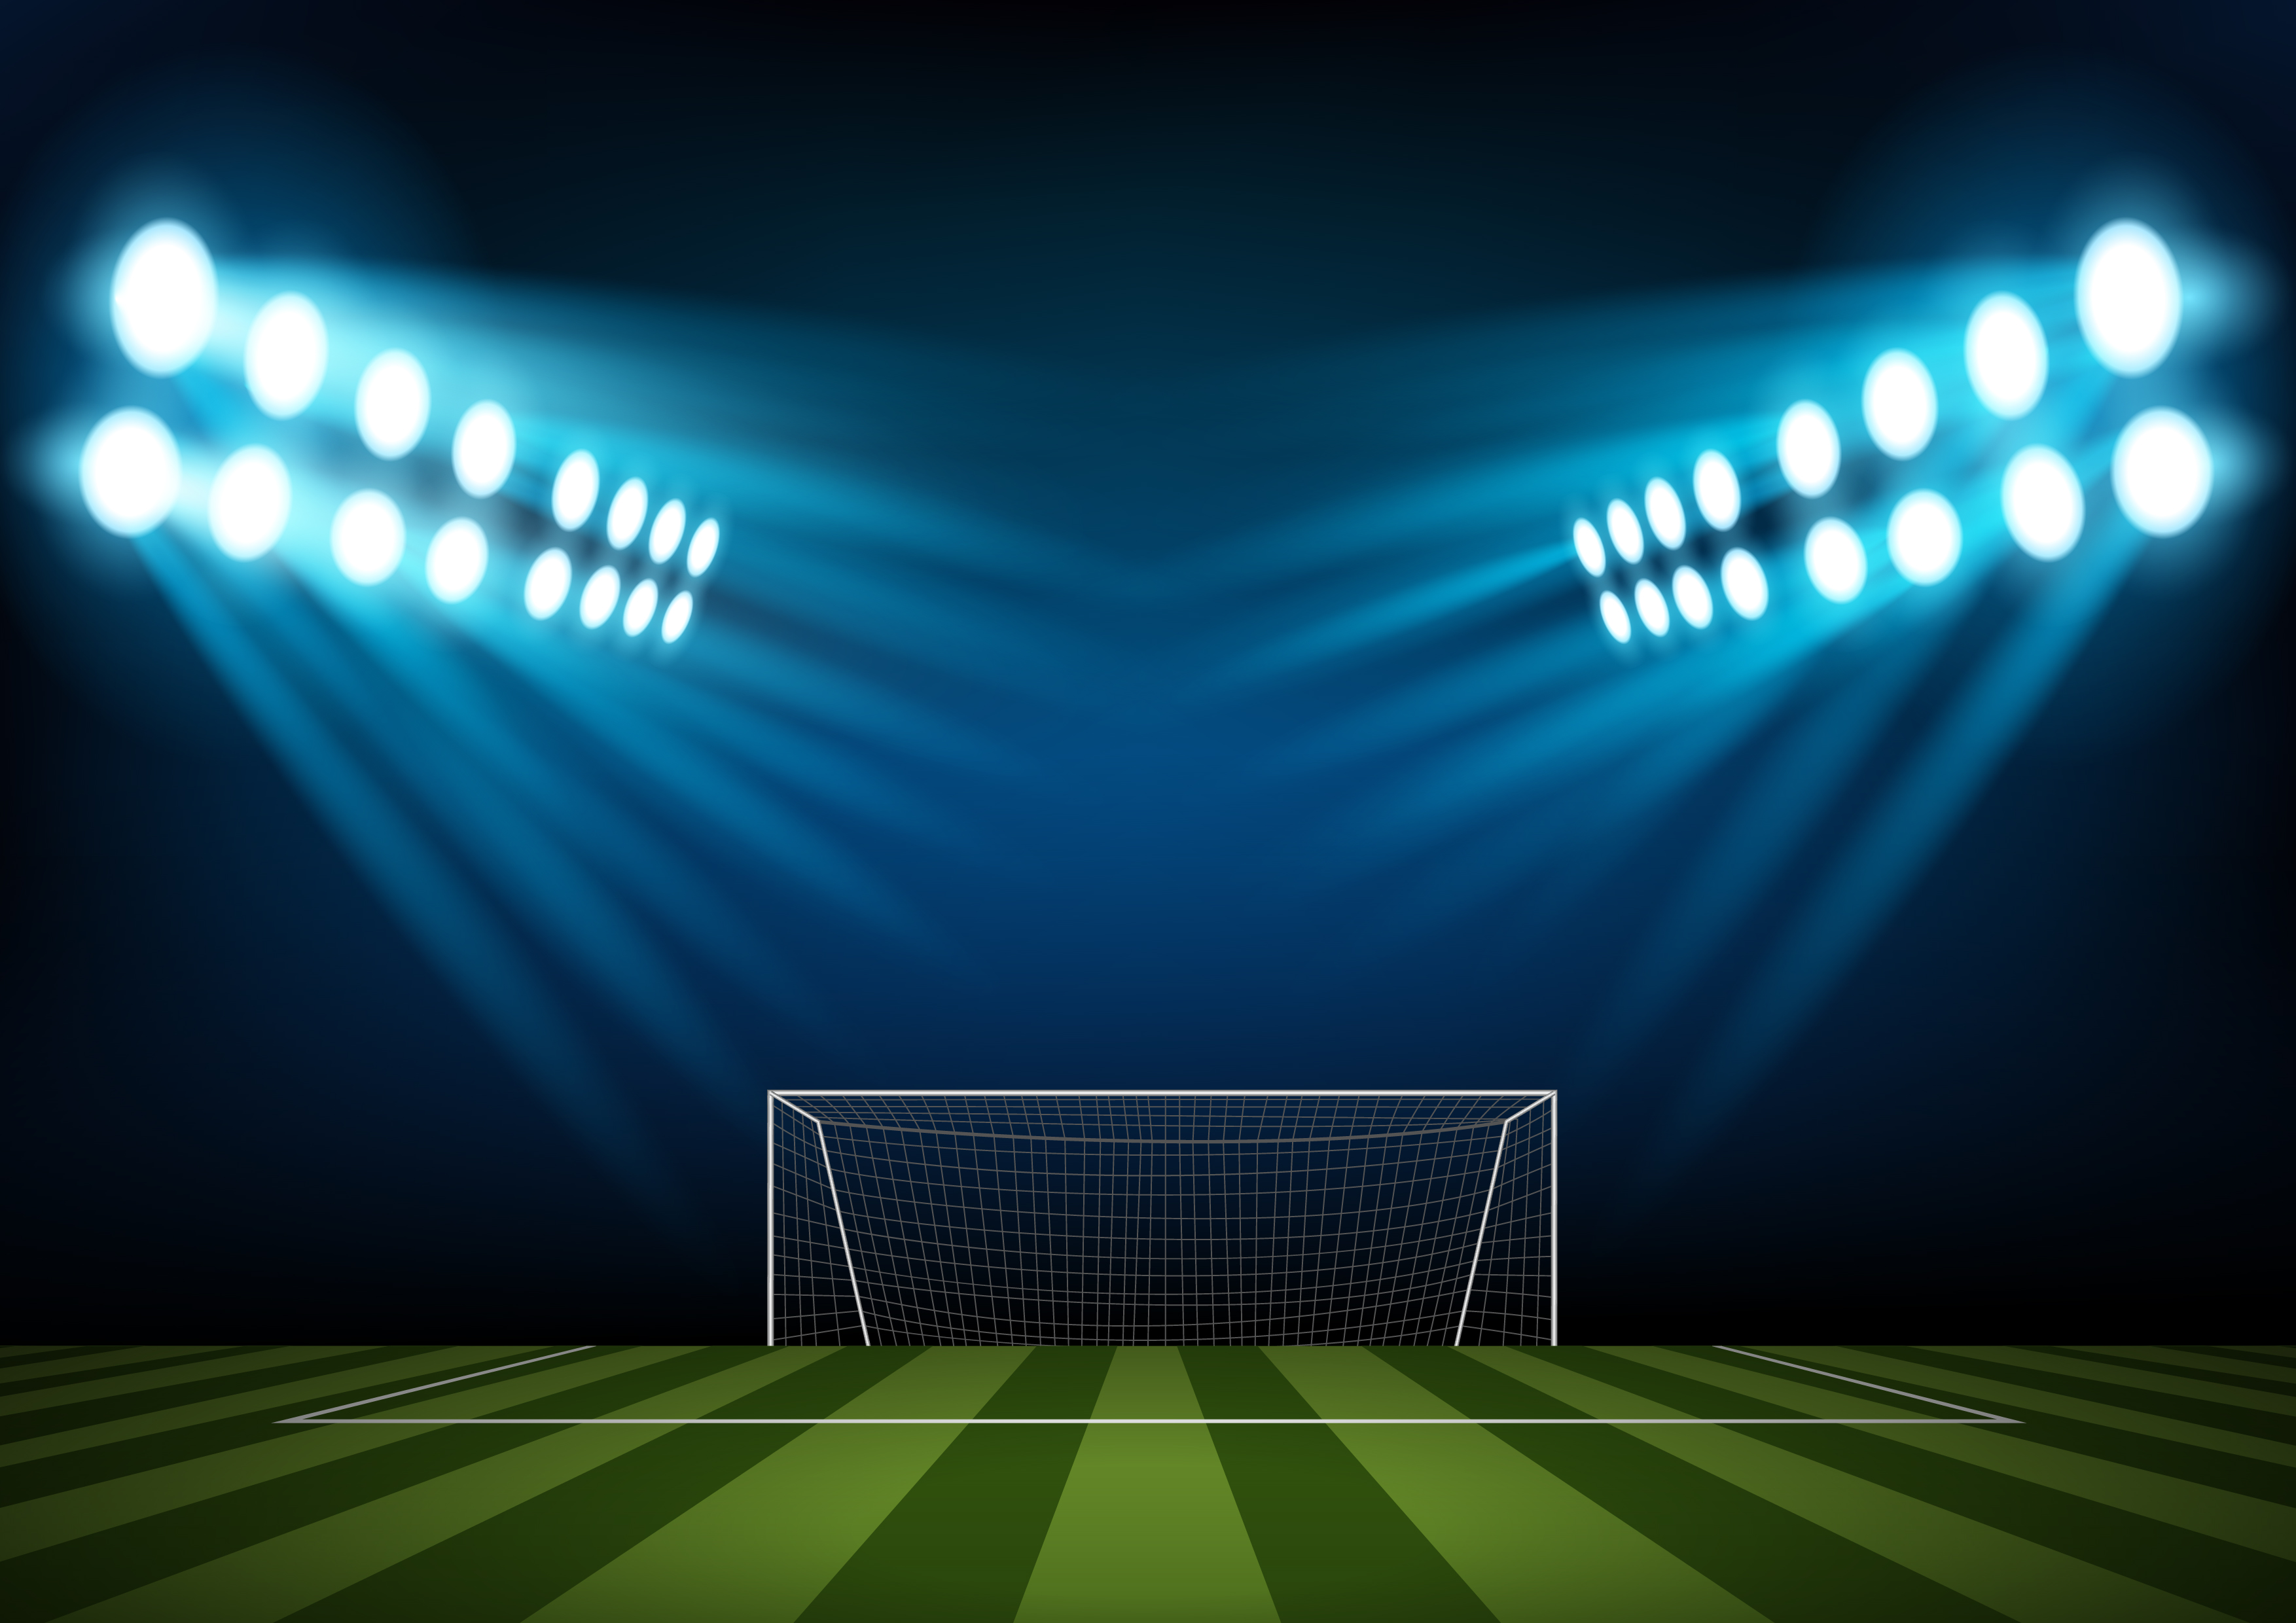 Light Soccer Field Sports Background Material Light Football Field Background Image For Free